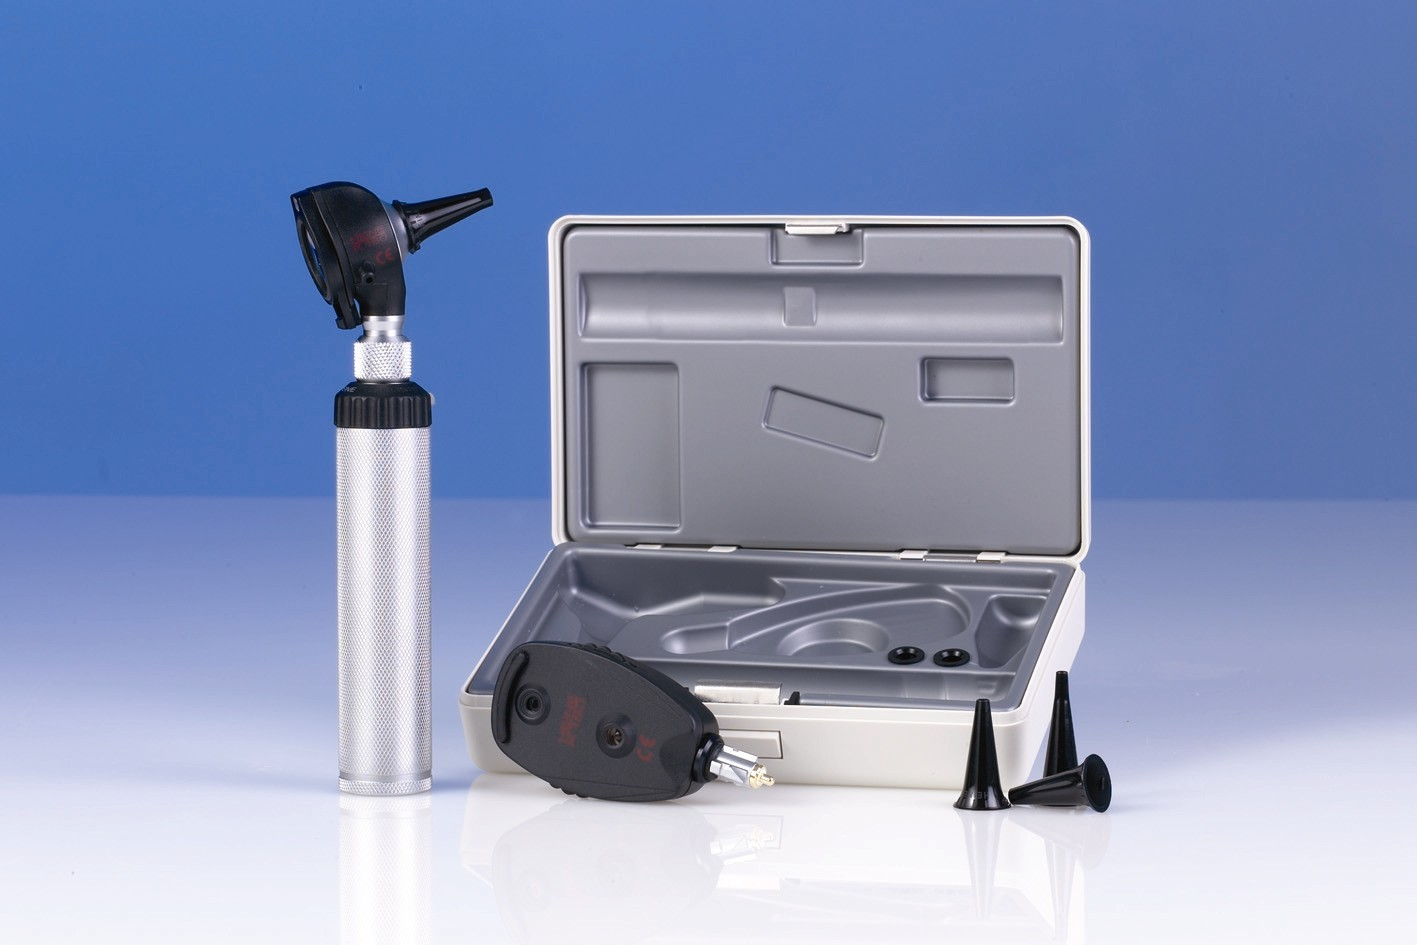 Heine K180 3.5v Diagnostic set in hard case with 1 rechargeable handle and recharger